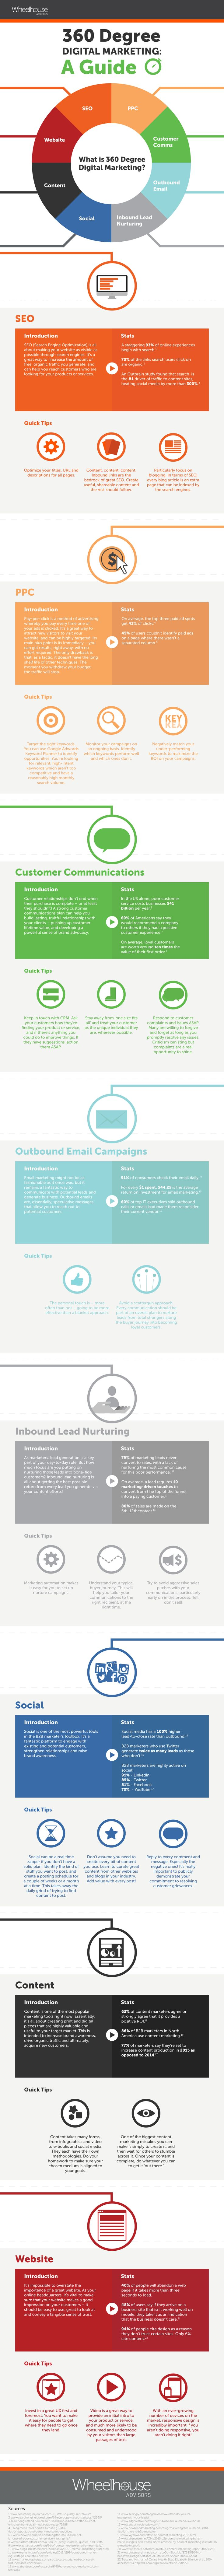 How to Create a 360-Degree Digital Marketing Strategy [Infographic]   Social Media Today